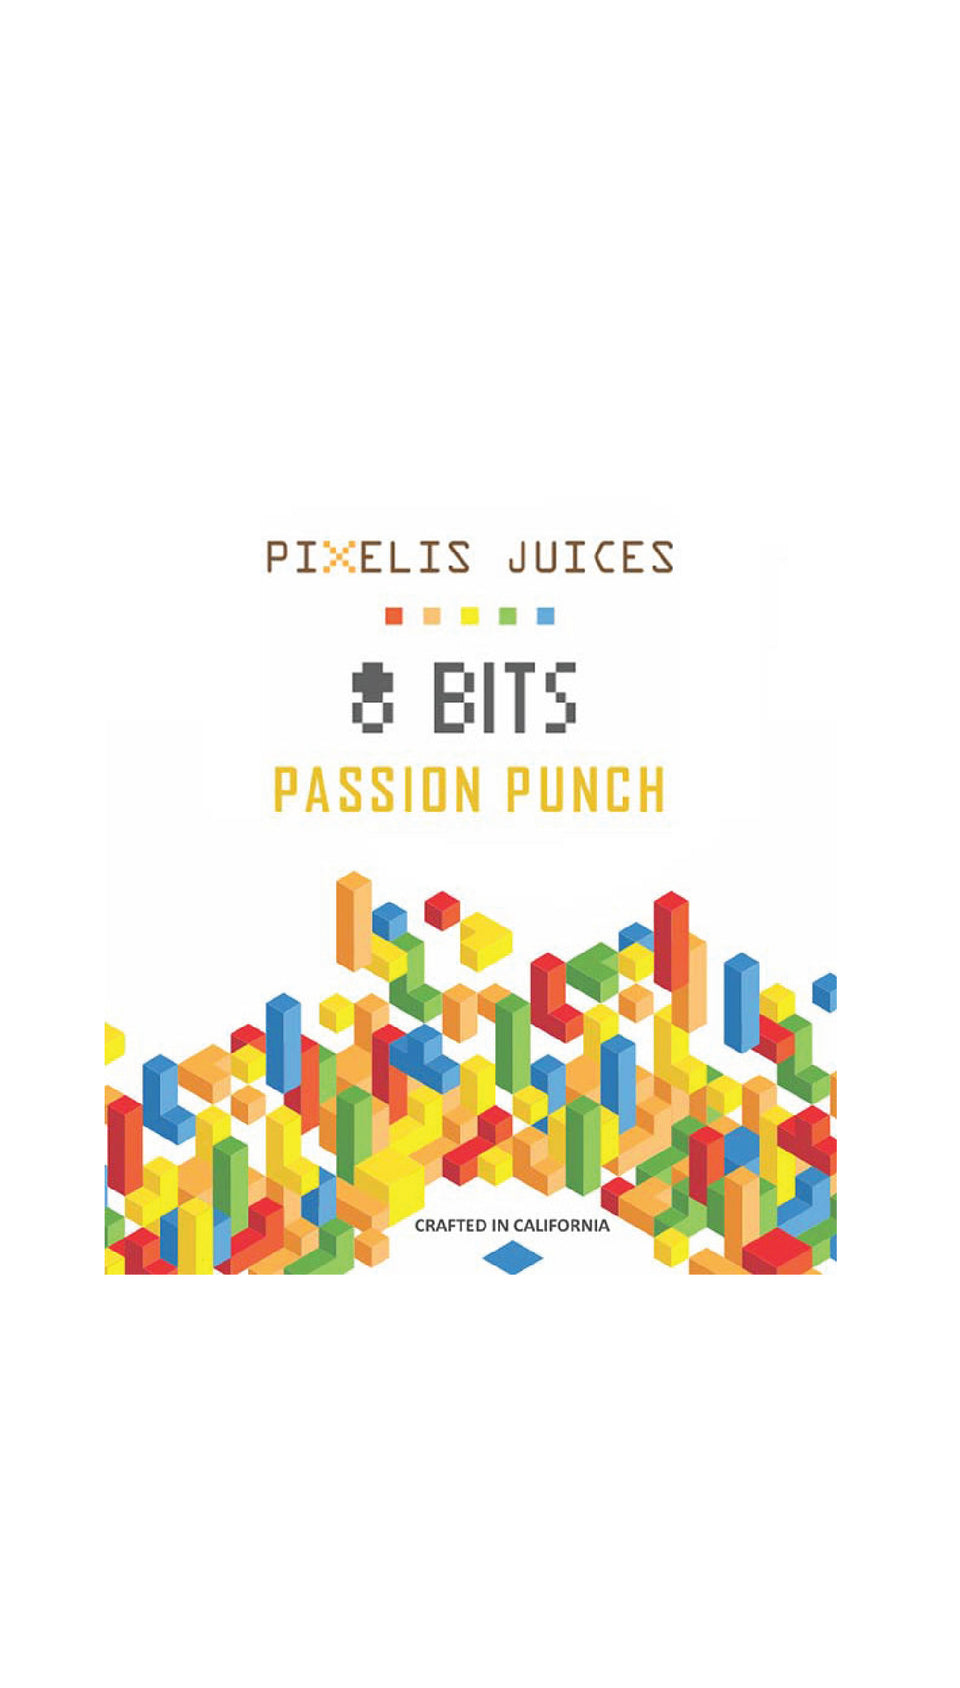 Pixelis Juices